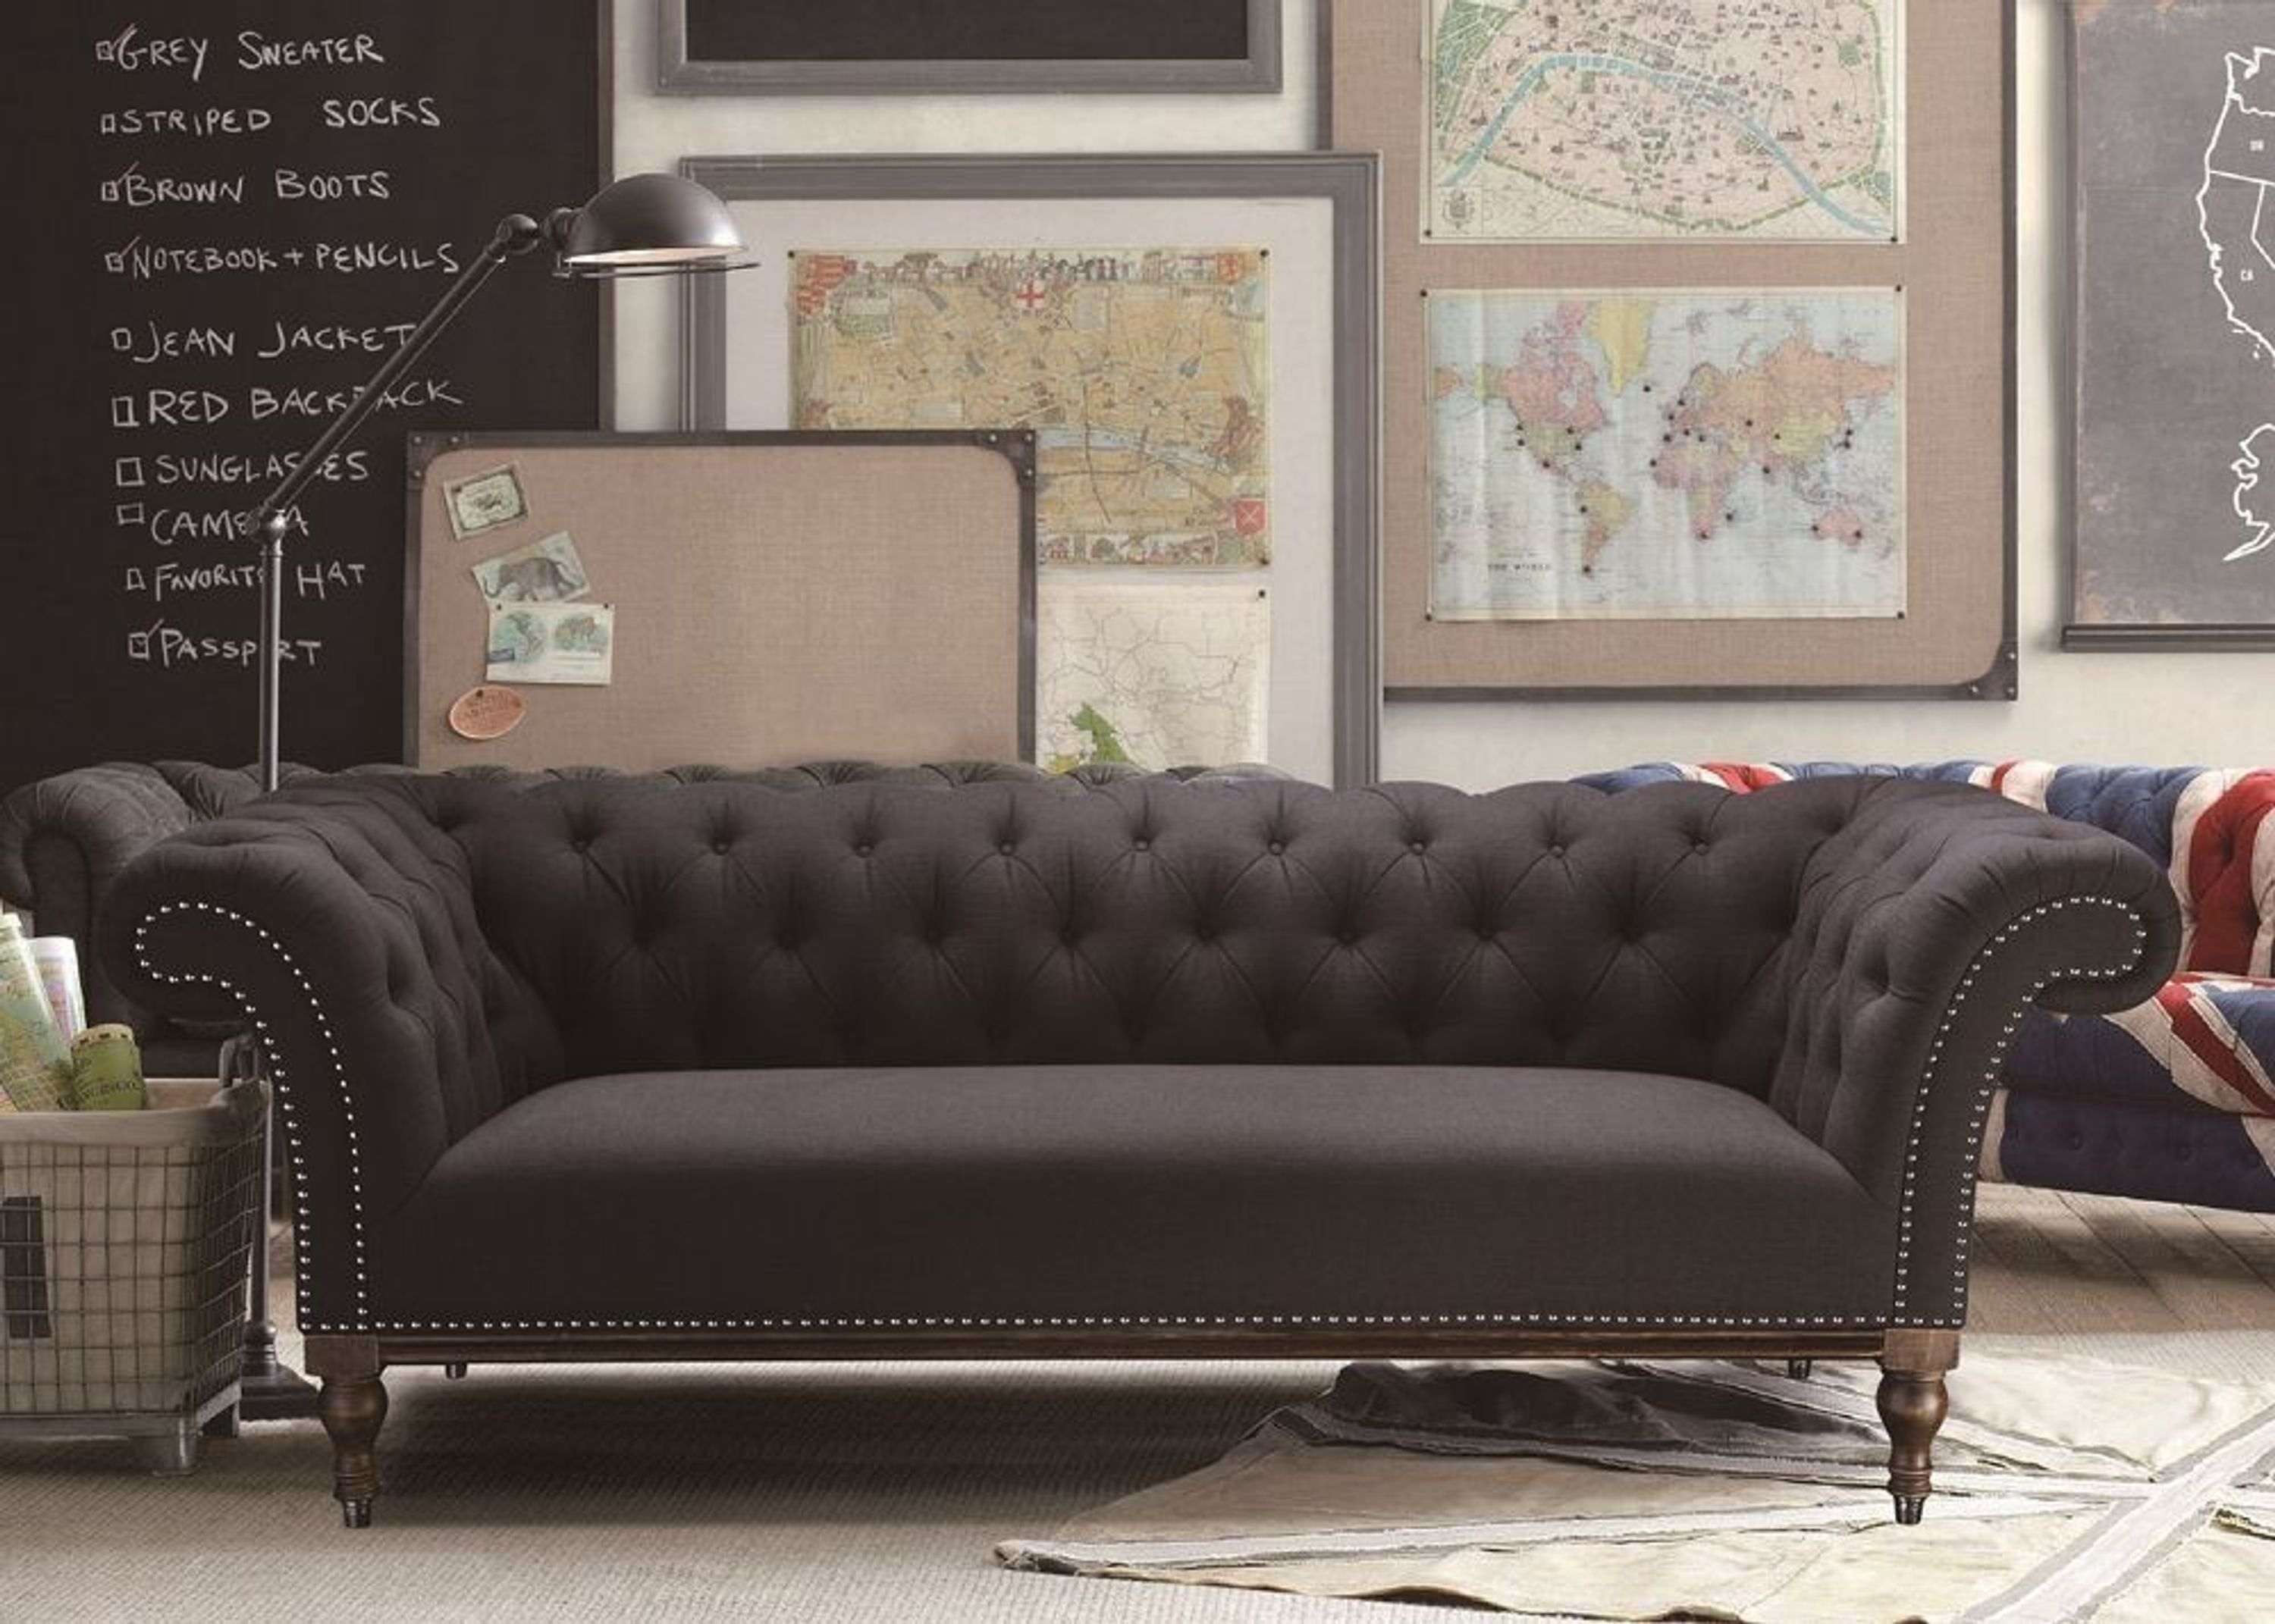 sofa miami designer couch 3 sitzer bezug webstoff dunkelgrau 9453 kaufen bei. Black Bedroom Furniture Sets. Home Design Ideas